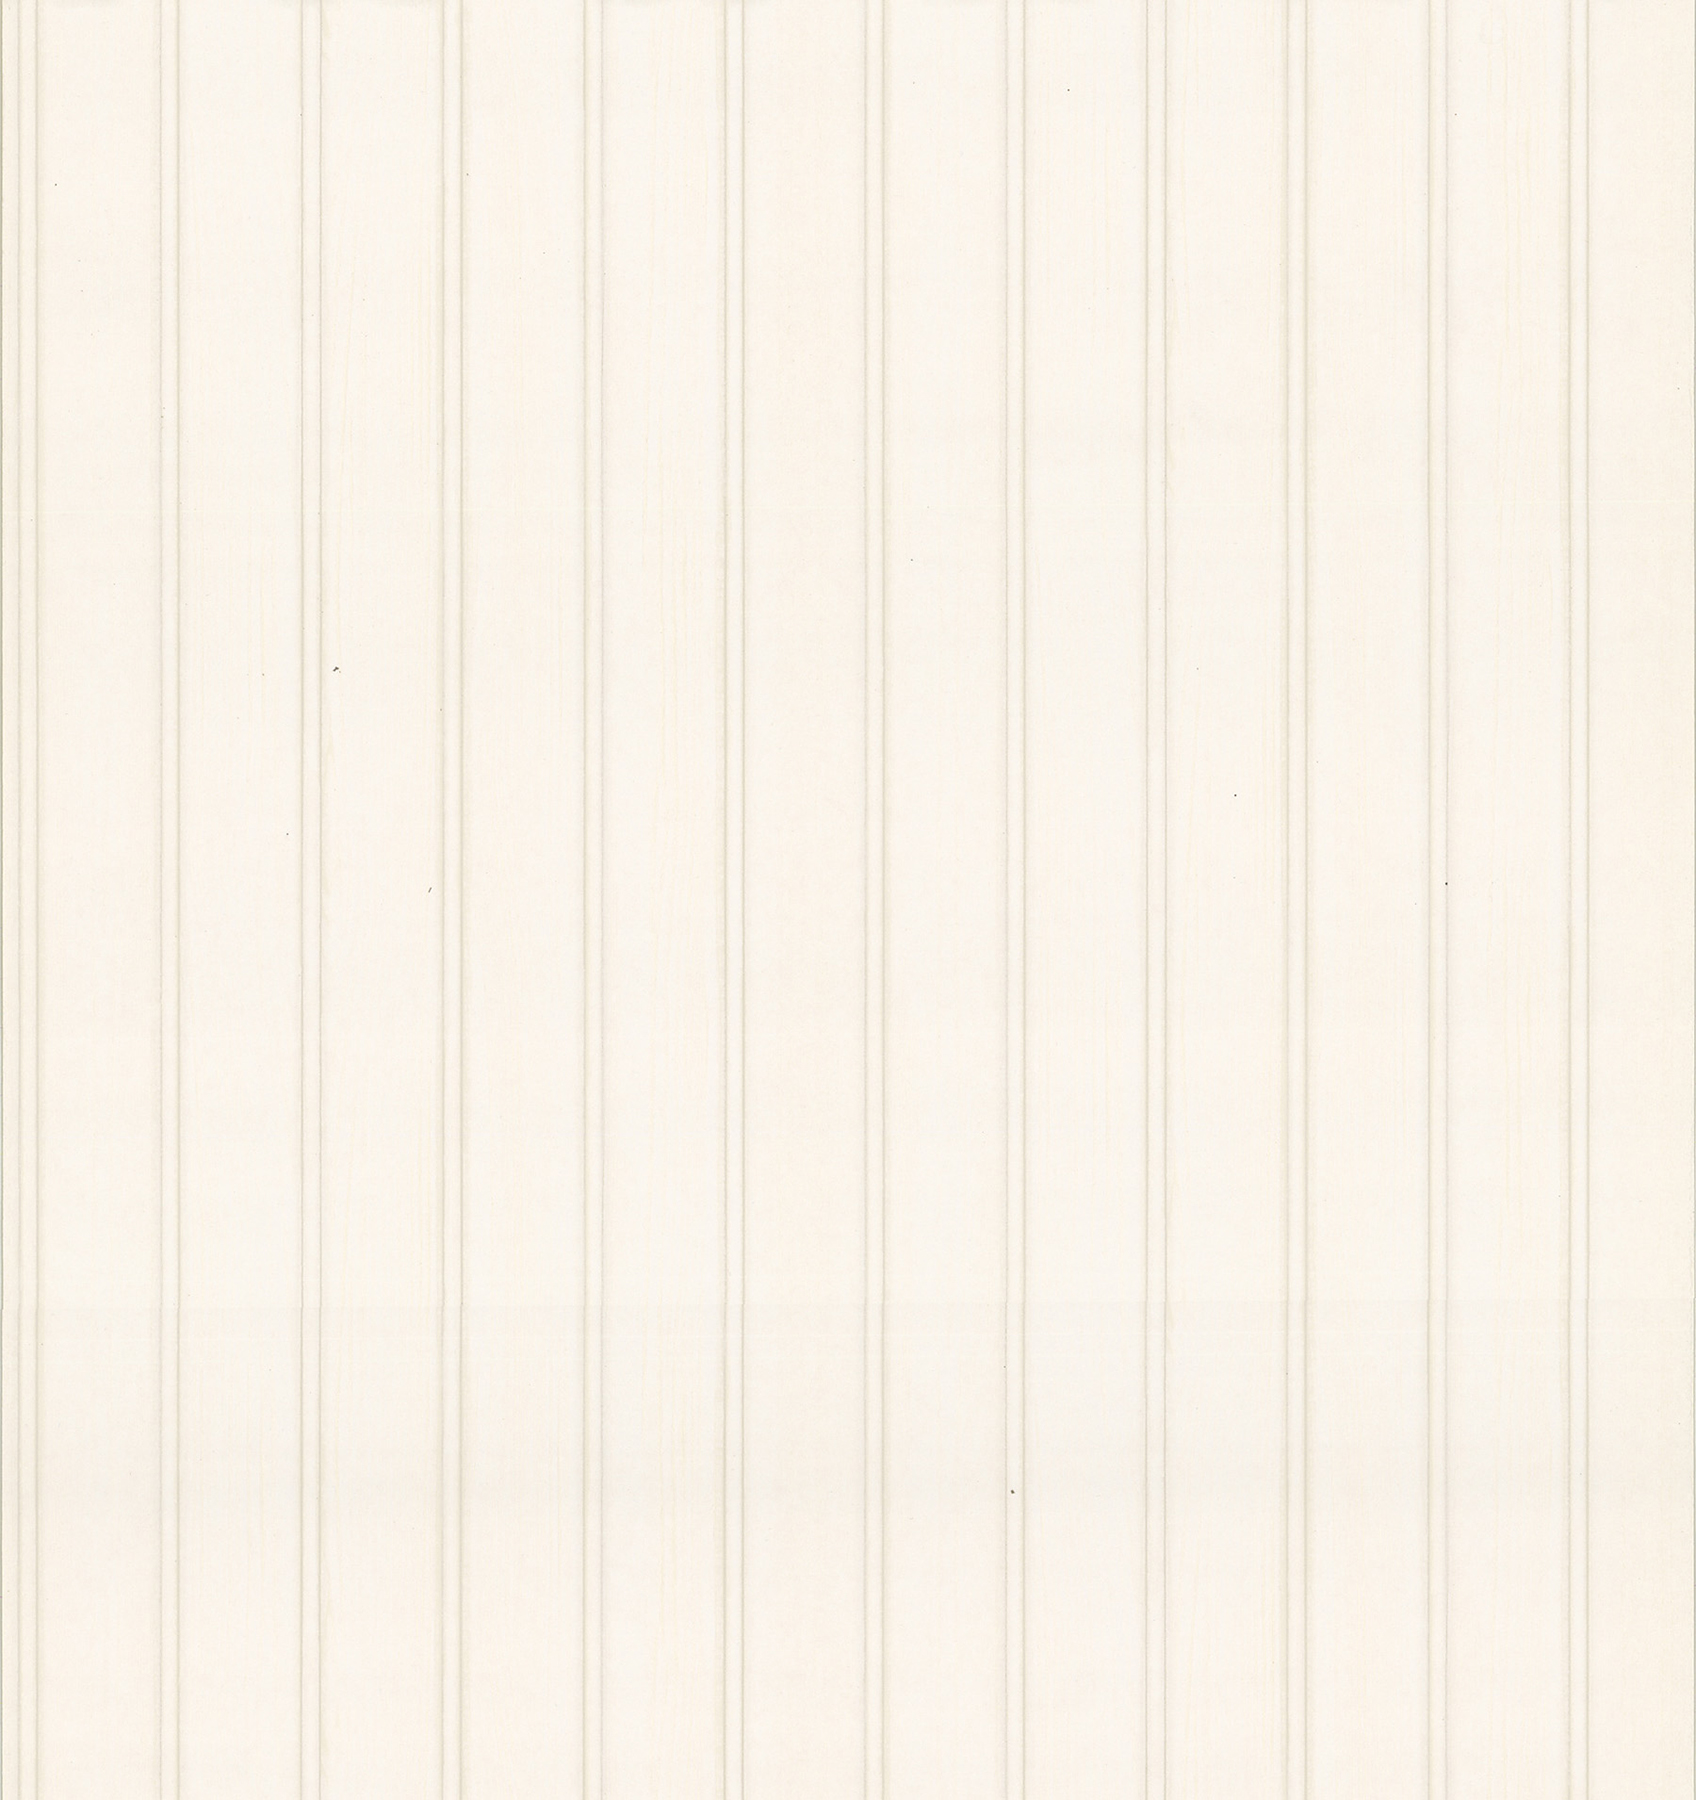 Kitchen Bed Bath Iv By Brewster 2686 21977 Aster White Beadboard Wallpaper Beadboard Wallpaper White Wood Paneling White Wood Floors